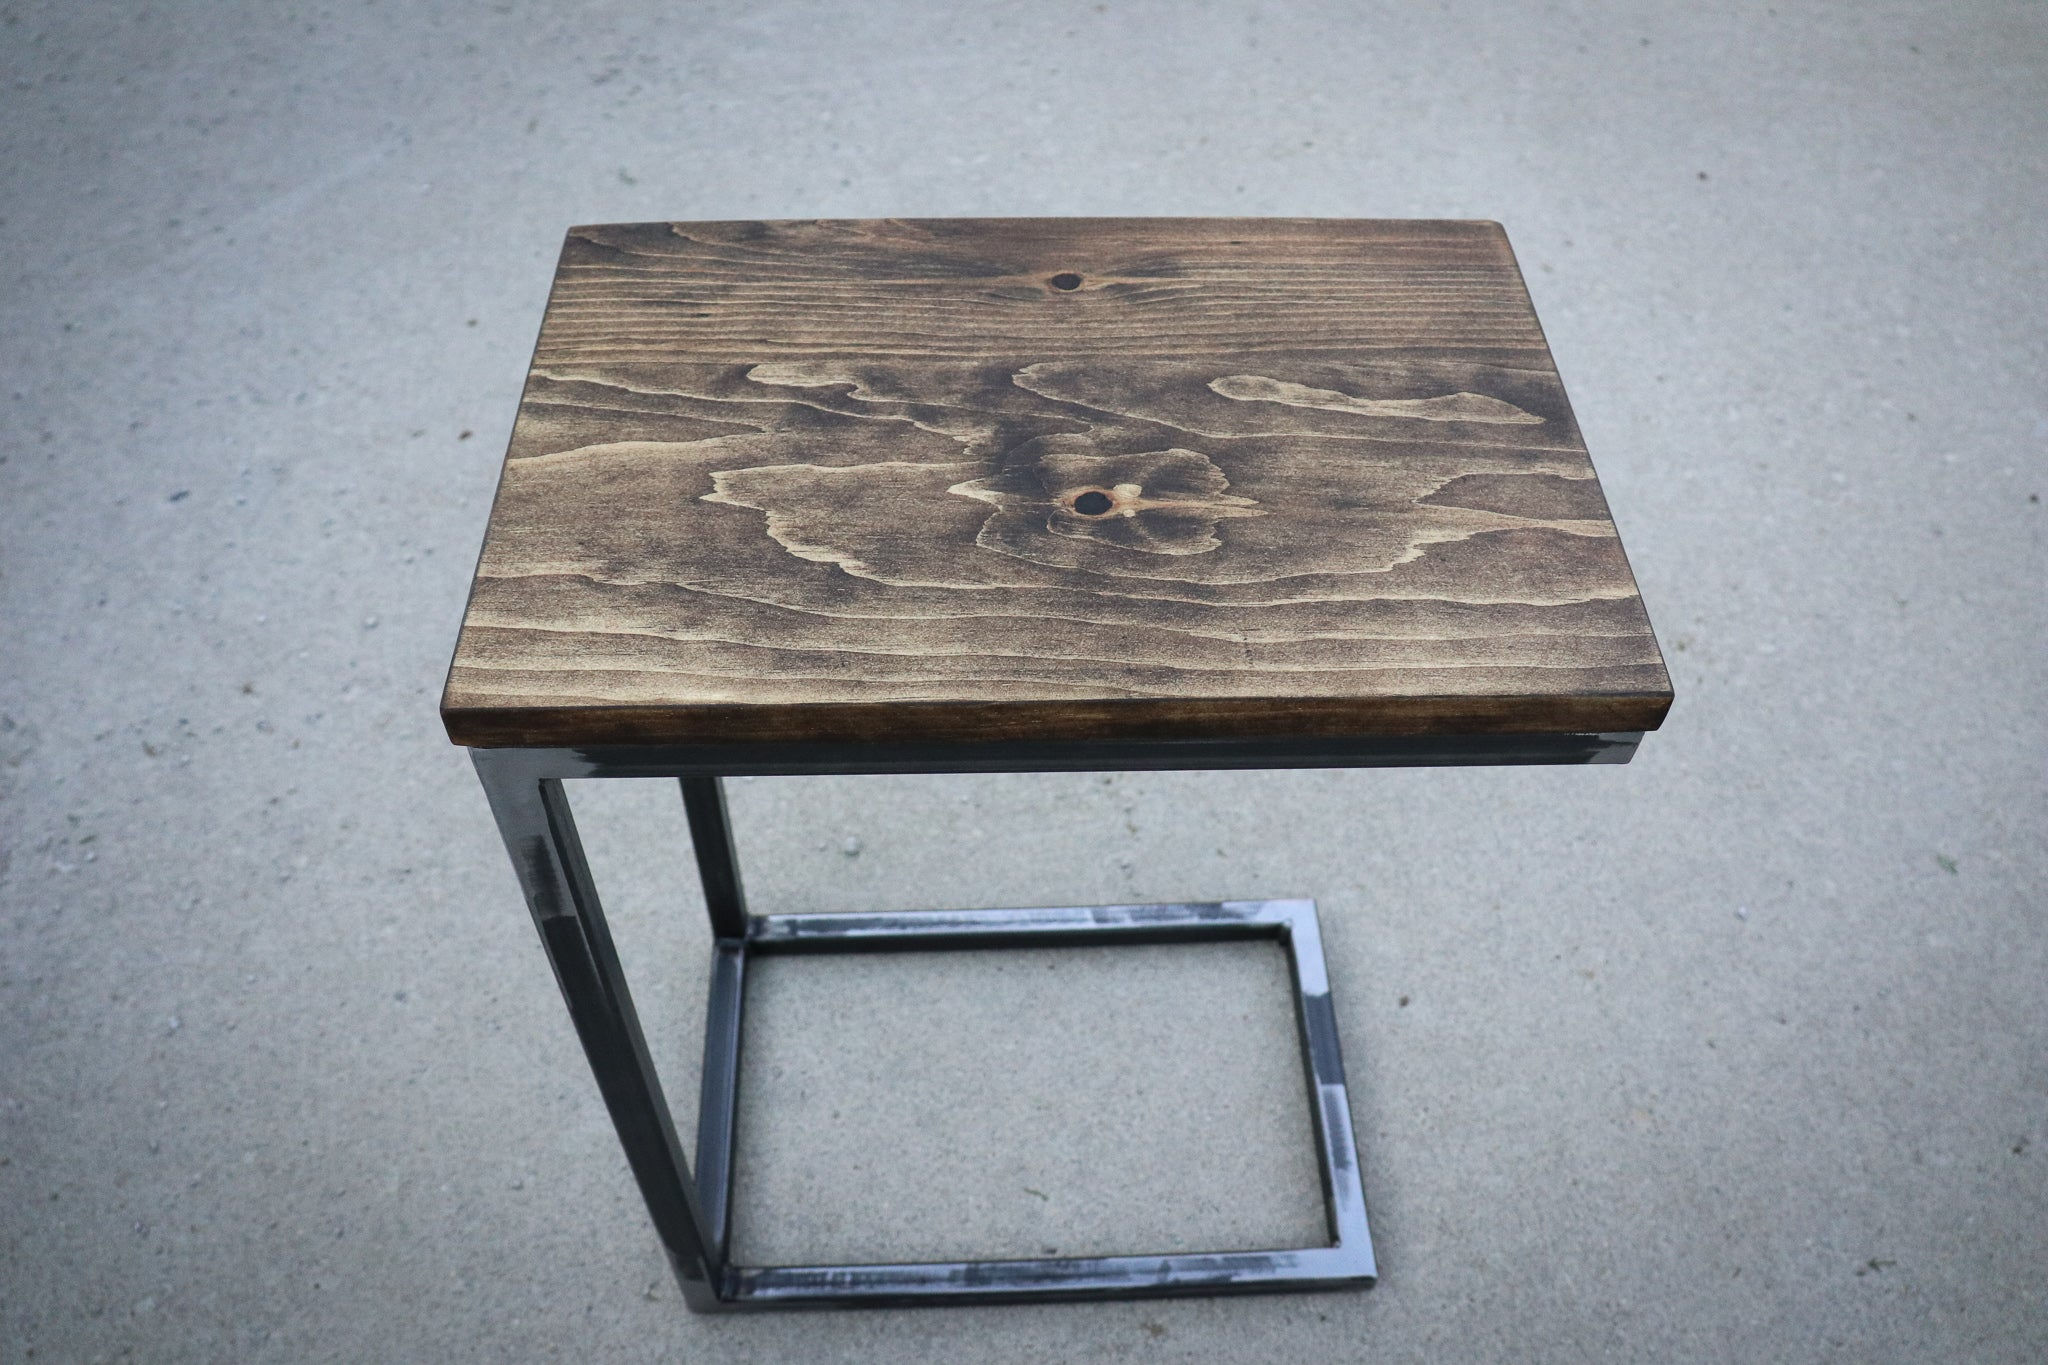 Pine Wood & Metal Industrial Side C Table